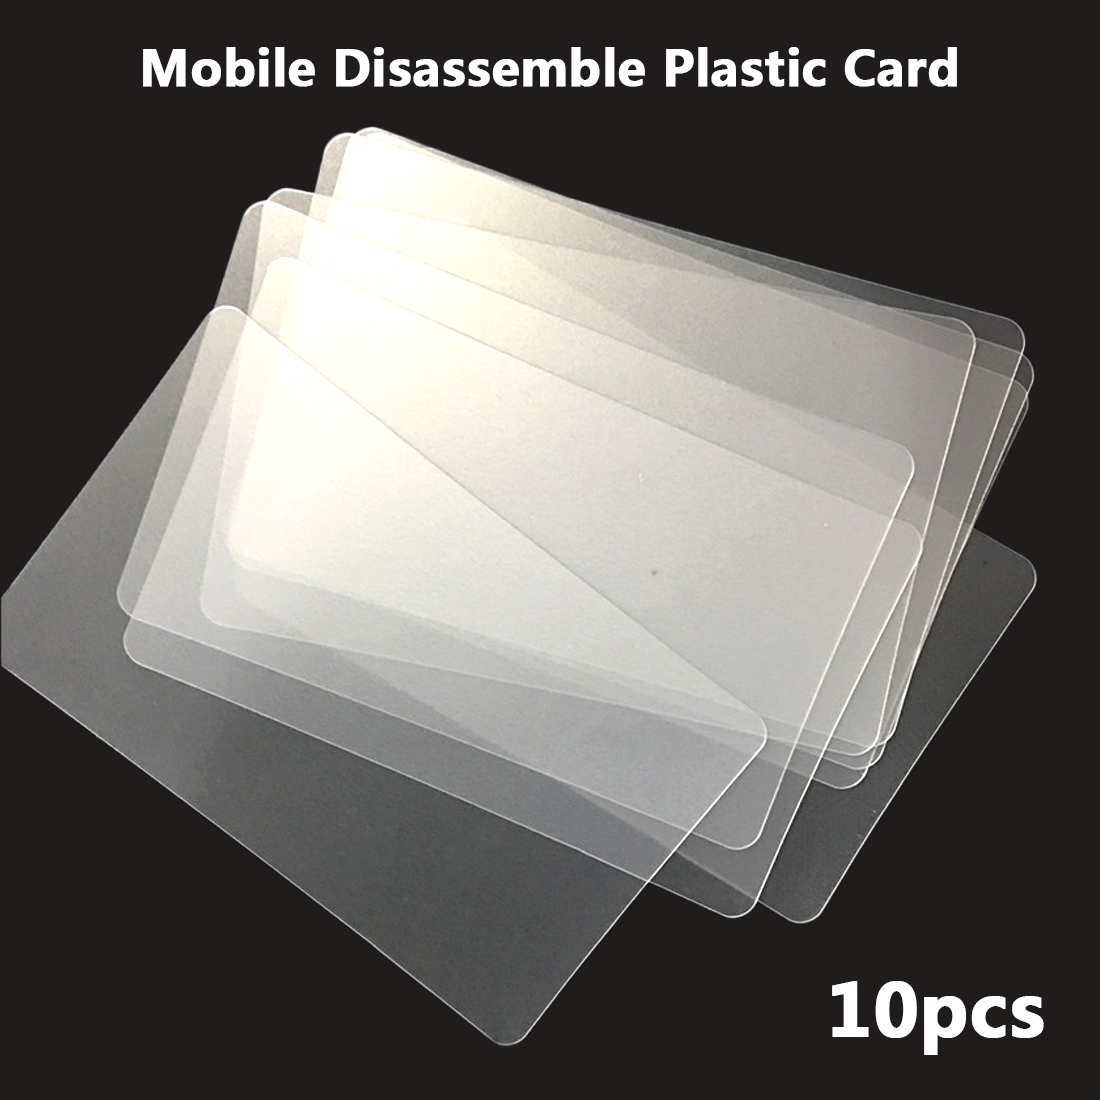 цена на Repair Tool 10pcs Handy Plastic Card Pry Opening Scraper for iPhone iPad Tablet for Samsung Mobile Phone Glued Screen Hand Tools